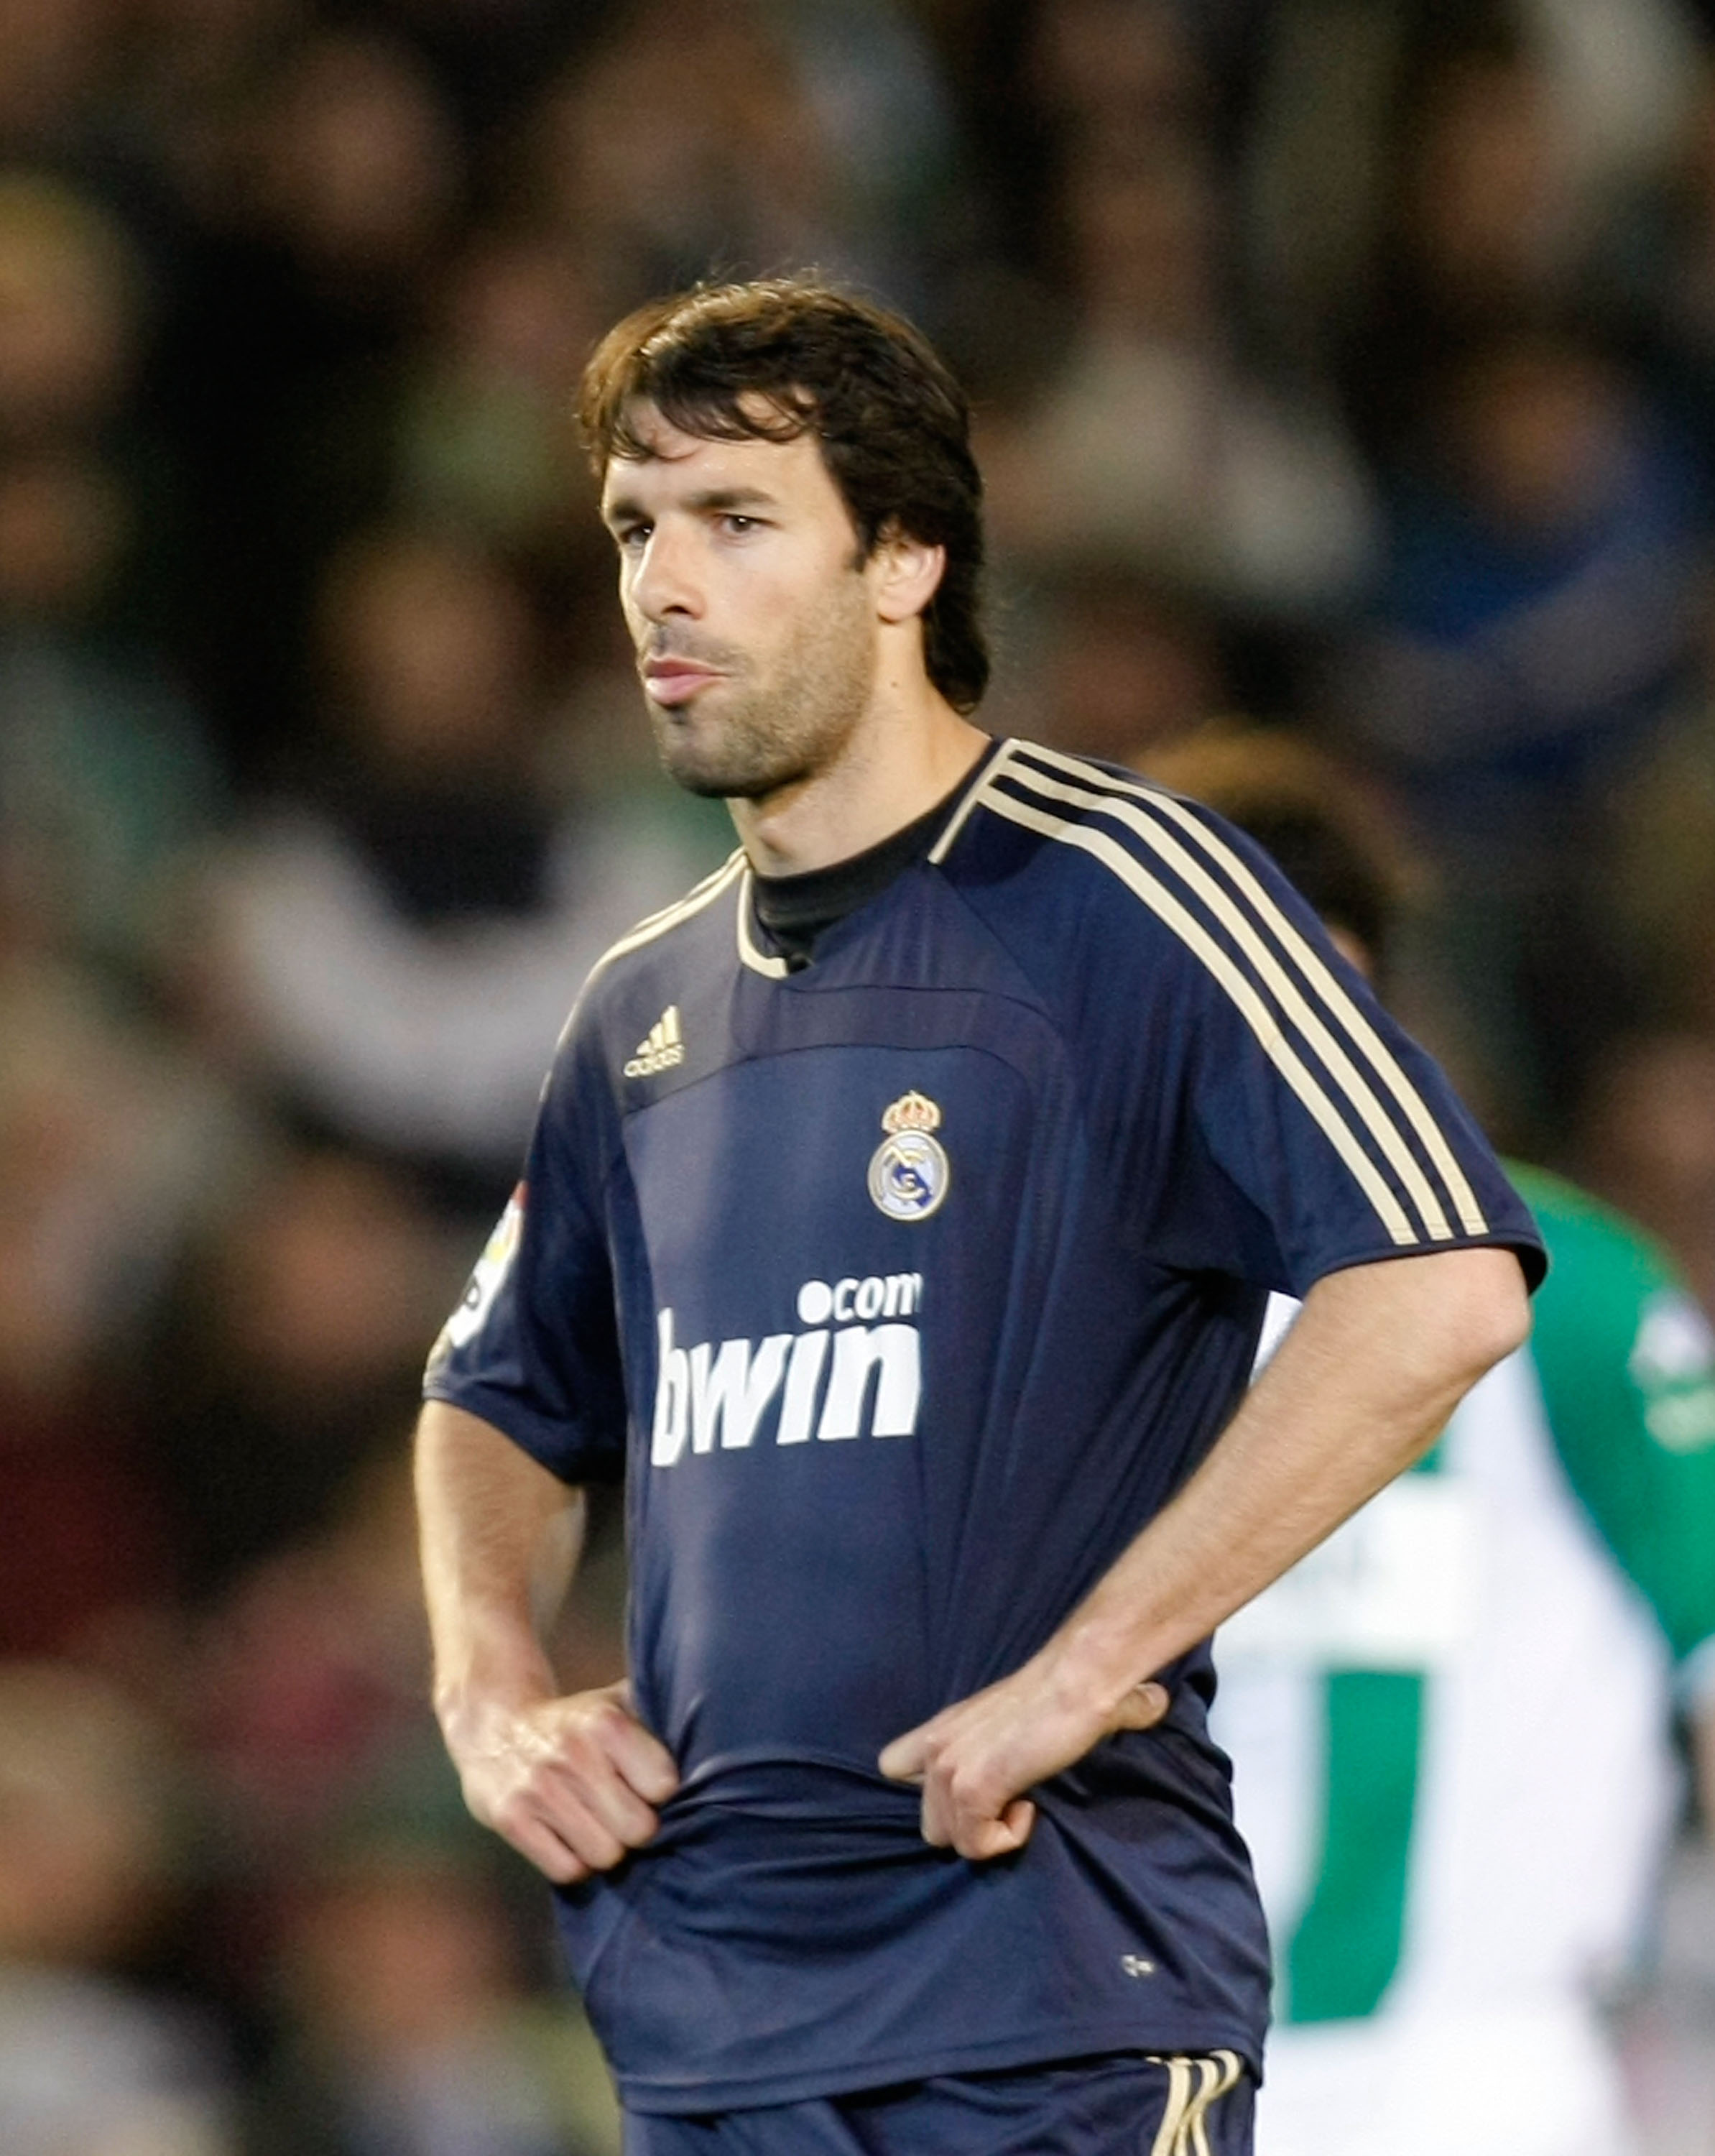 SEVILLE, SPAIN - FEBRUARY 16:  Ruud Van Nistelrooy of  Real Madrid  looks disappointed during the La Liga match between Real Betis and Real Madrid at the Manuel Ruiz de Lopera stadium on February 16, 2008 in Seville, Spain.  (Photo by Denis Doyle/Getty Im